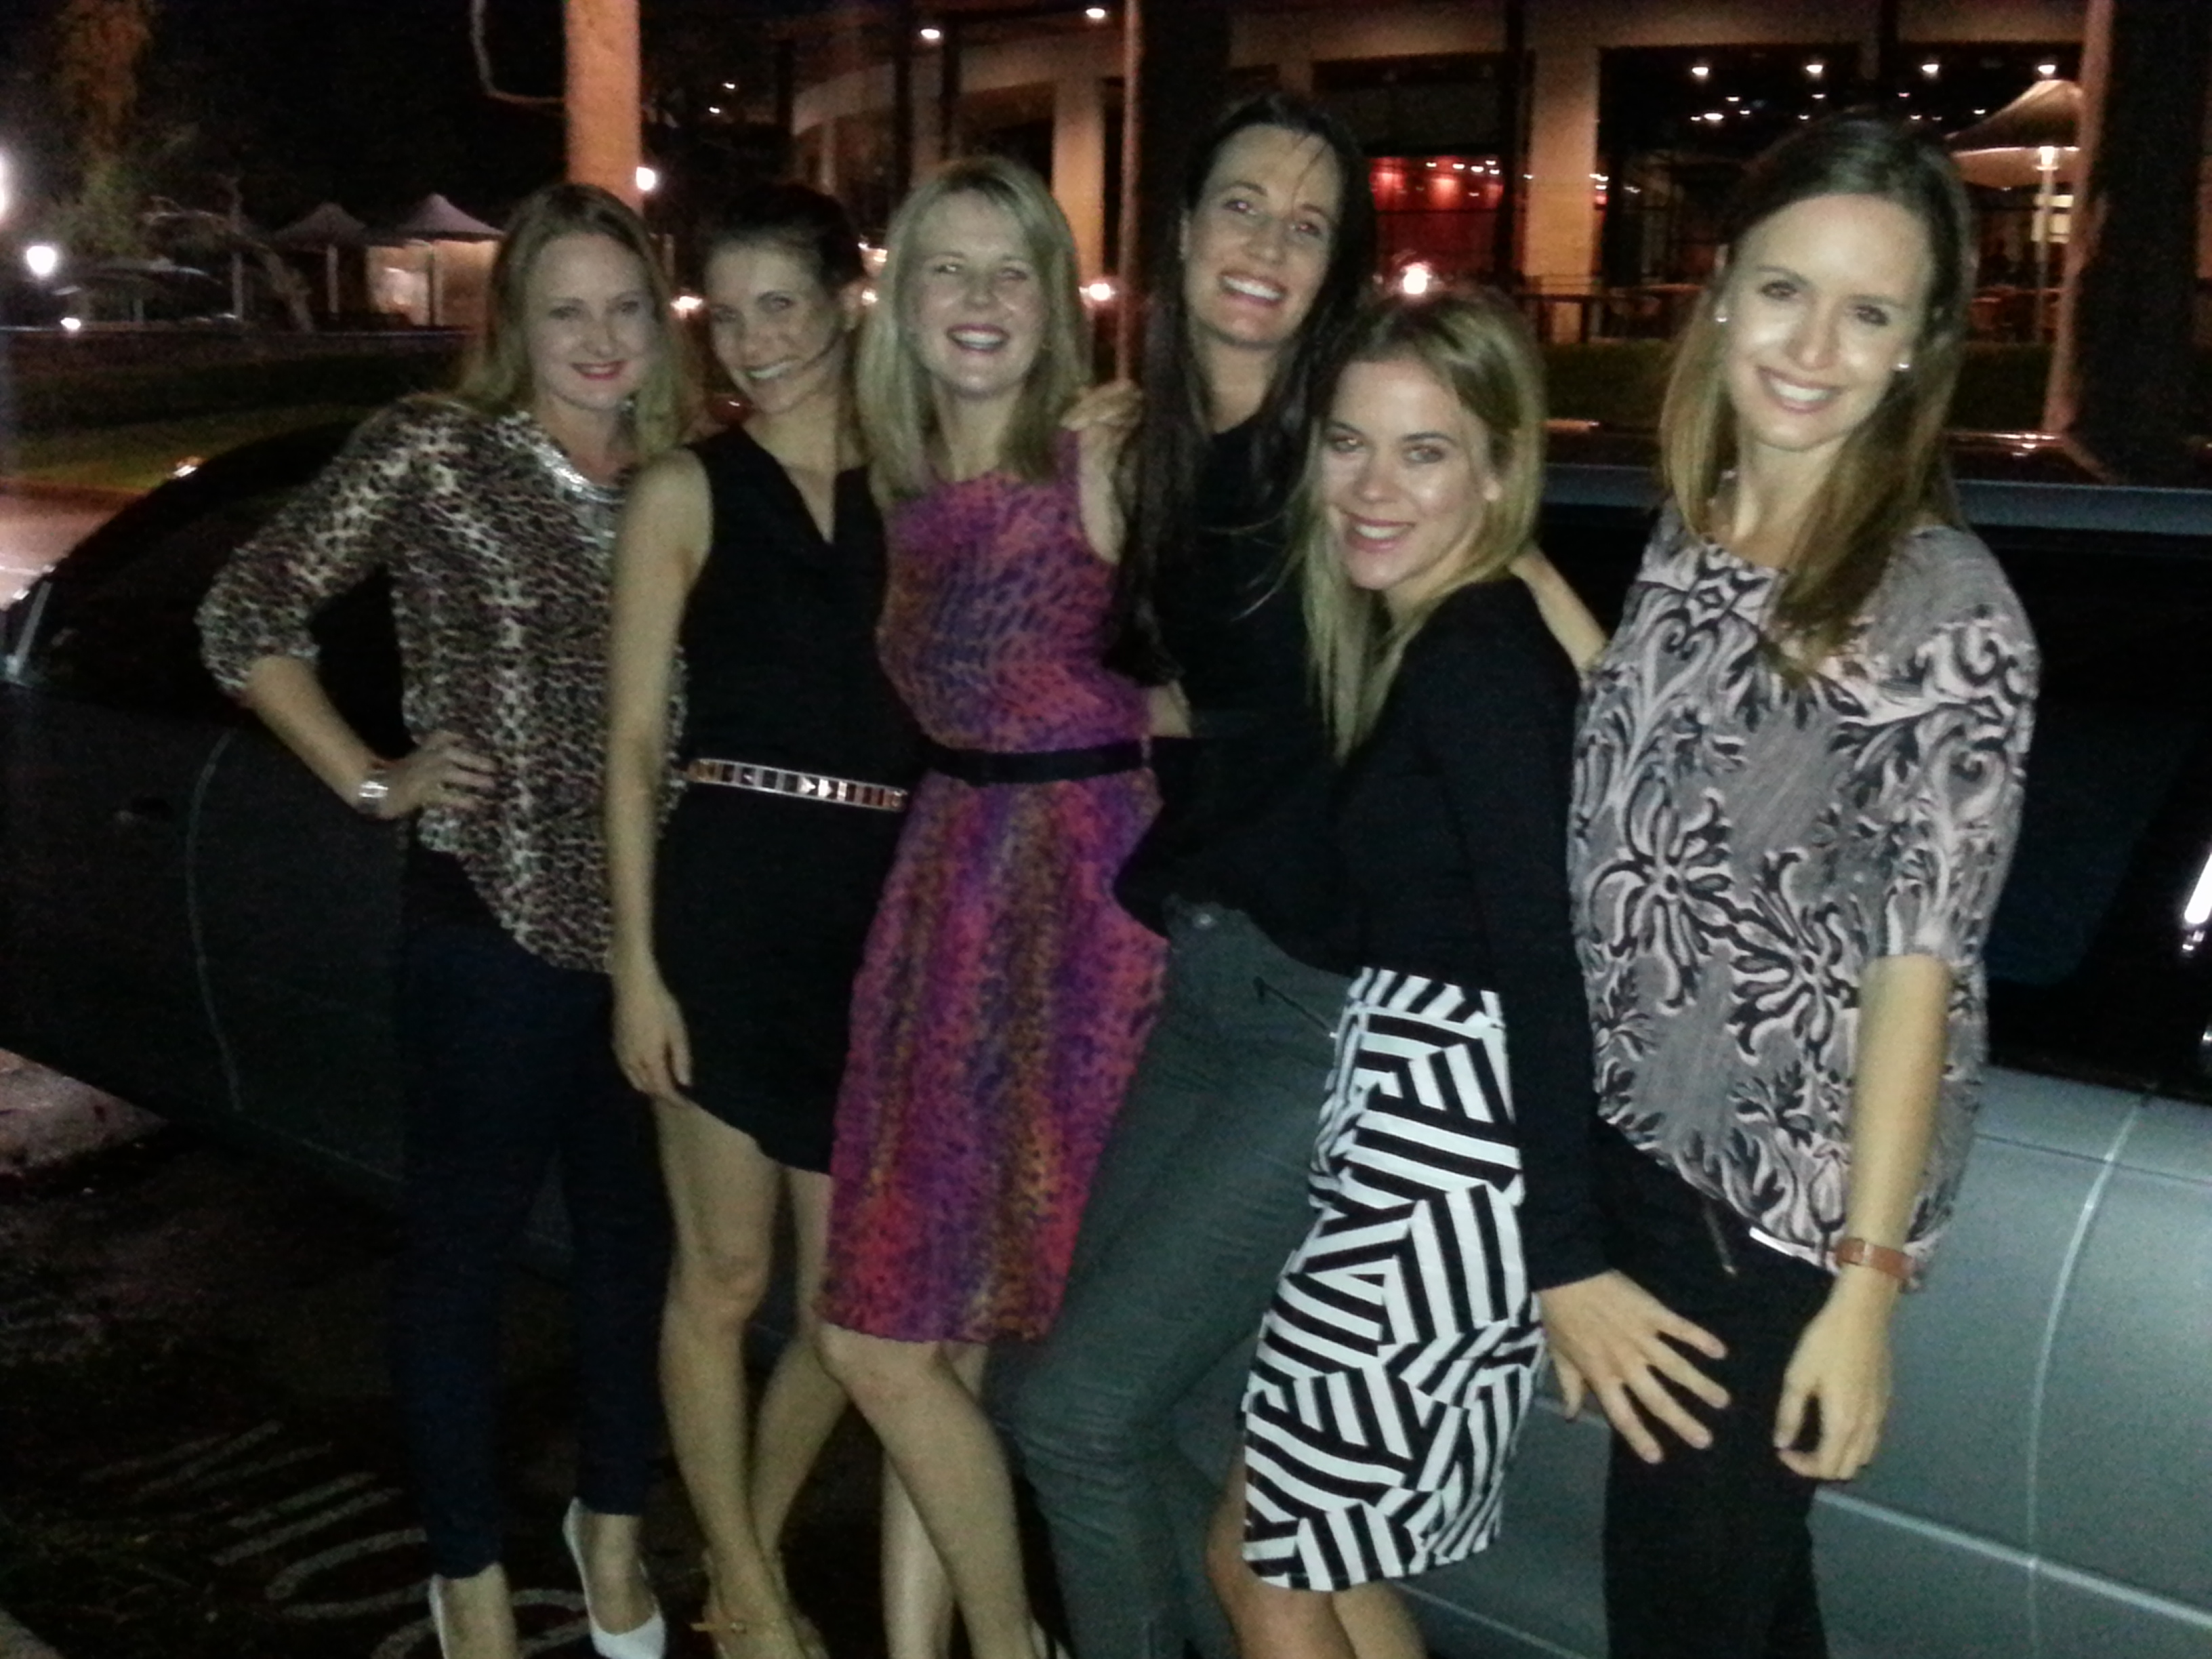 Wedding Limousine Hire with lovely ladies enjoying a great night out